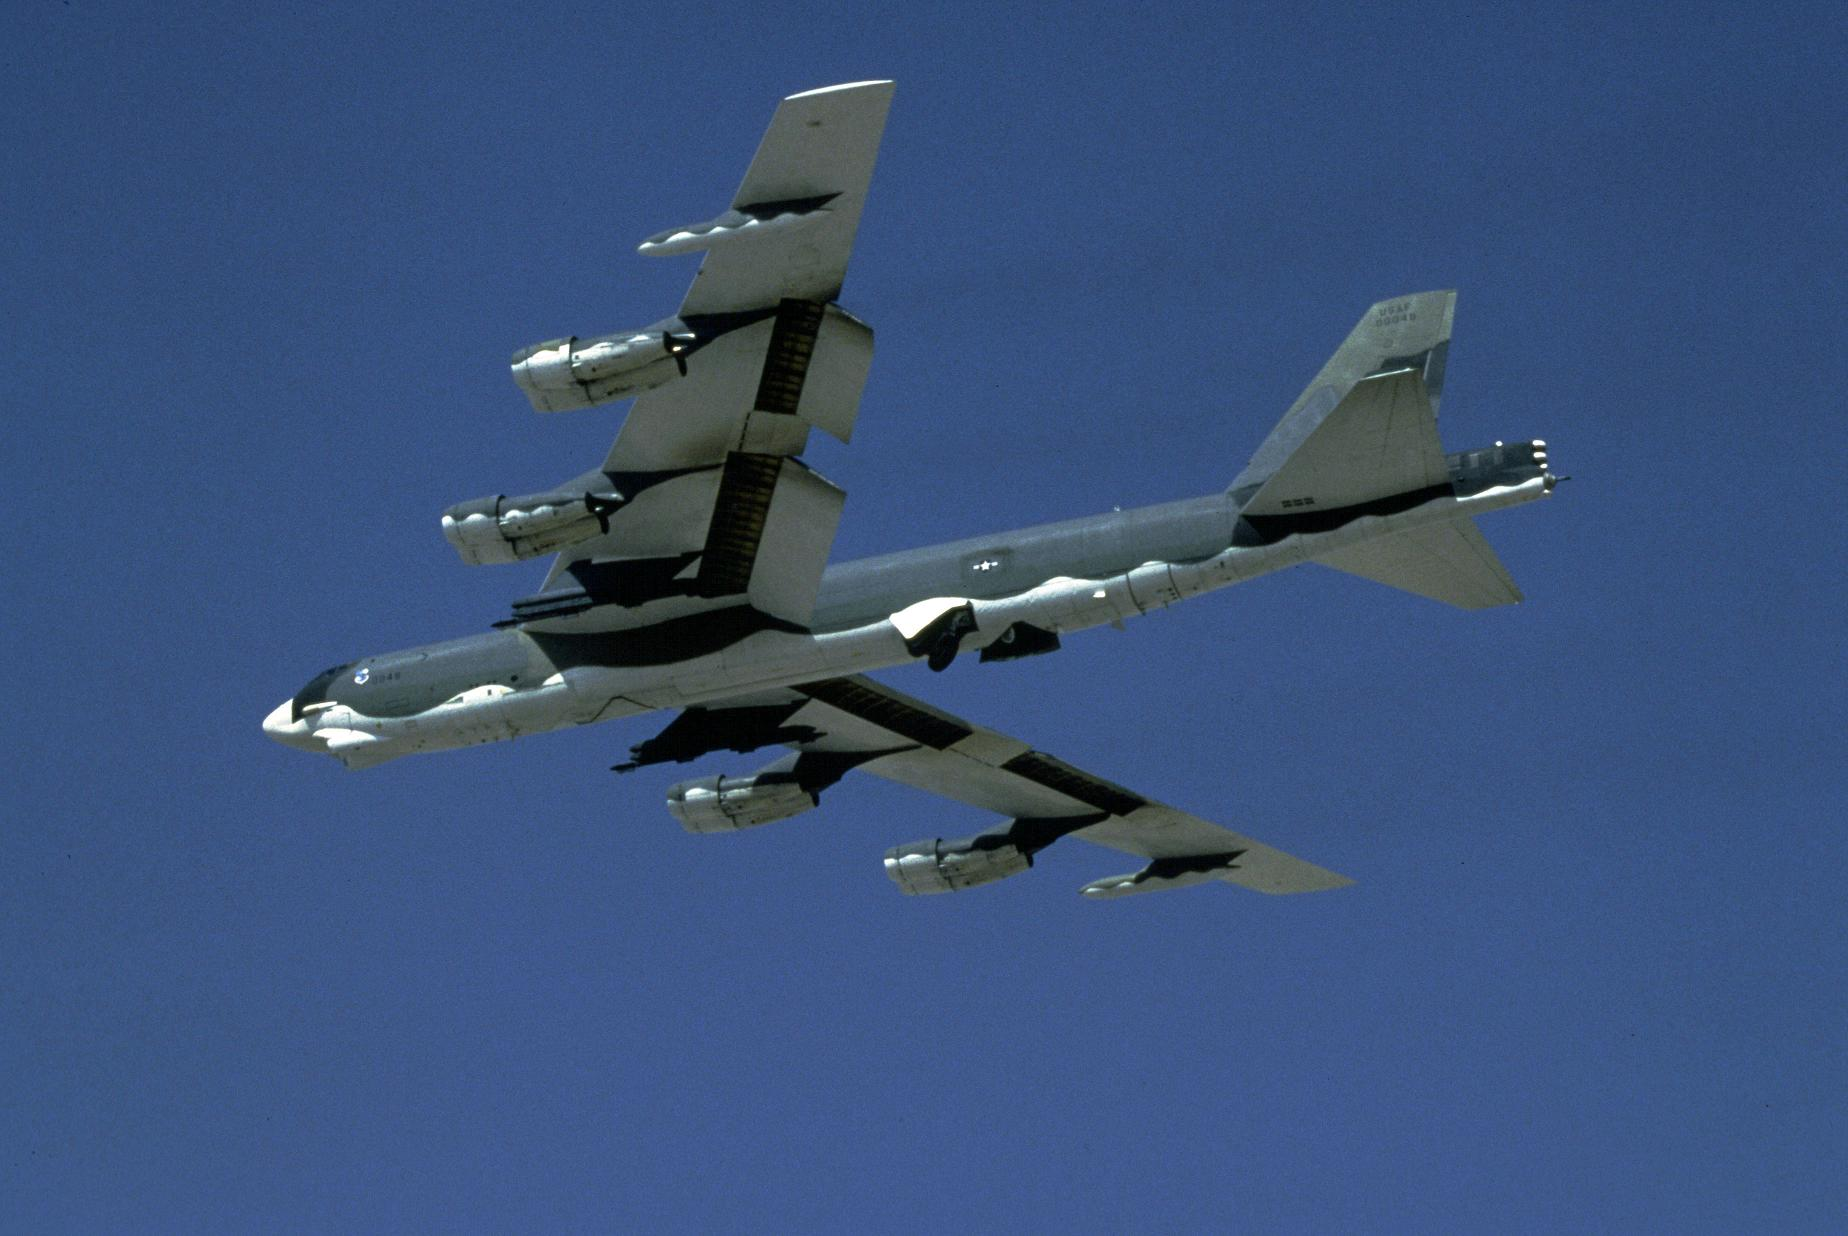 B-52 Stratofortress -